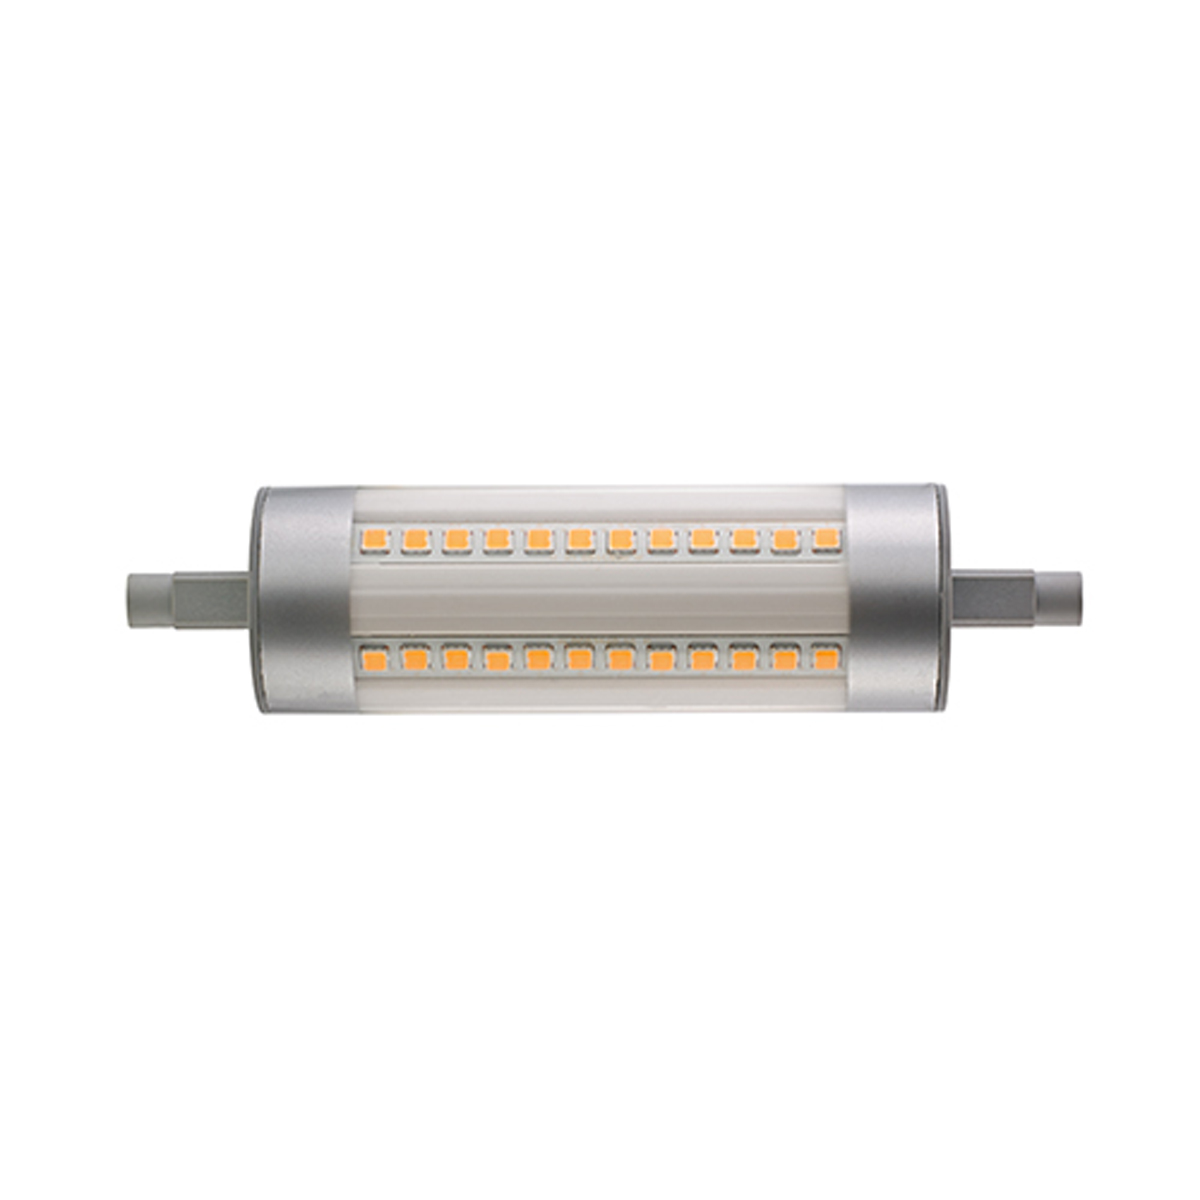 Sigor LED Stab Luxar R7s 117 mm, 12 W, 2700 K